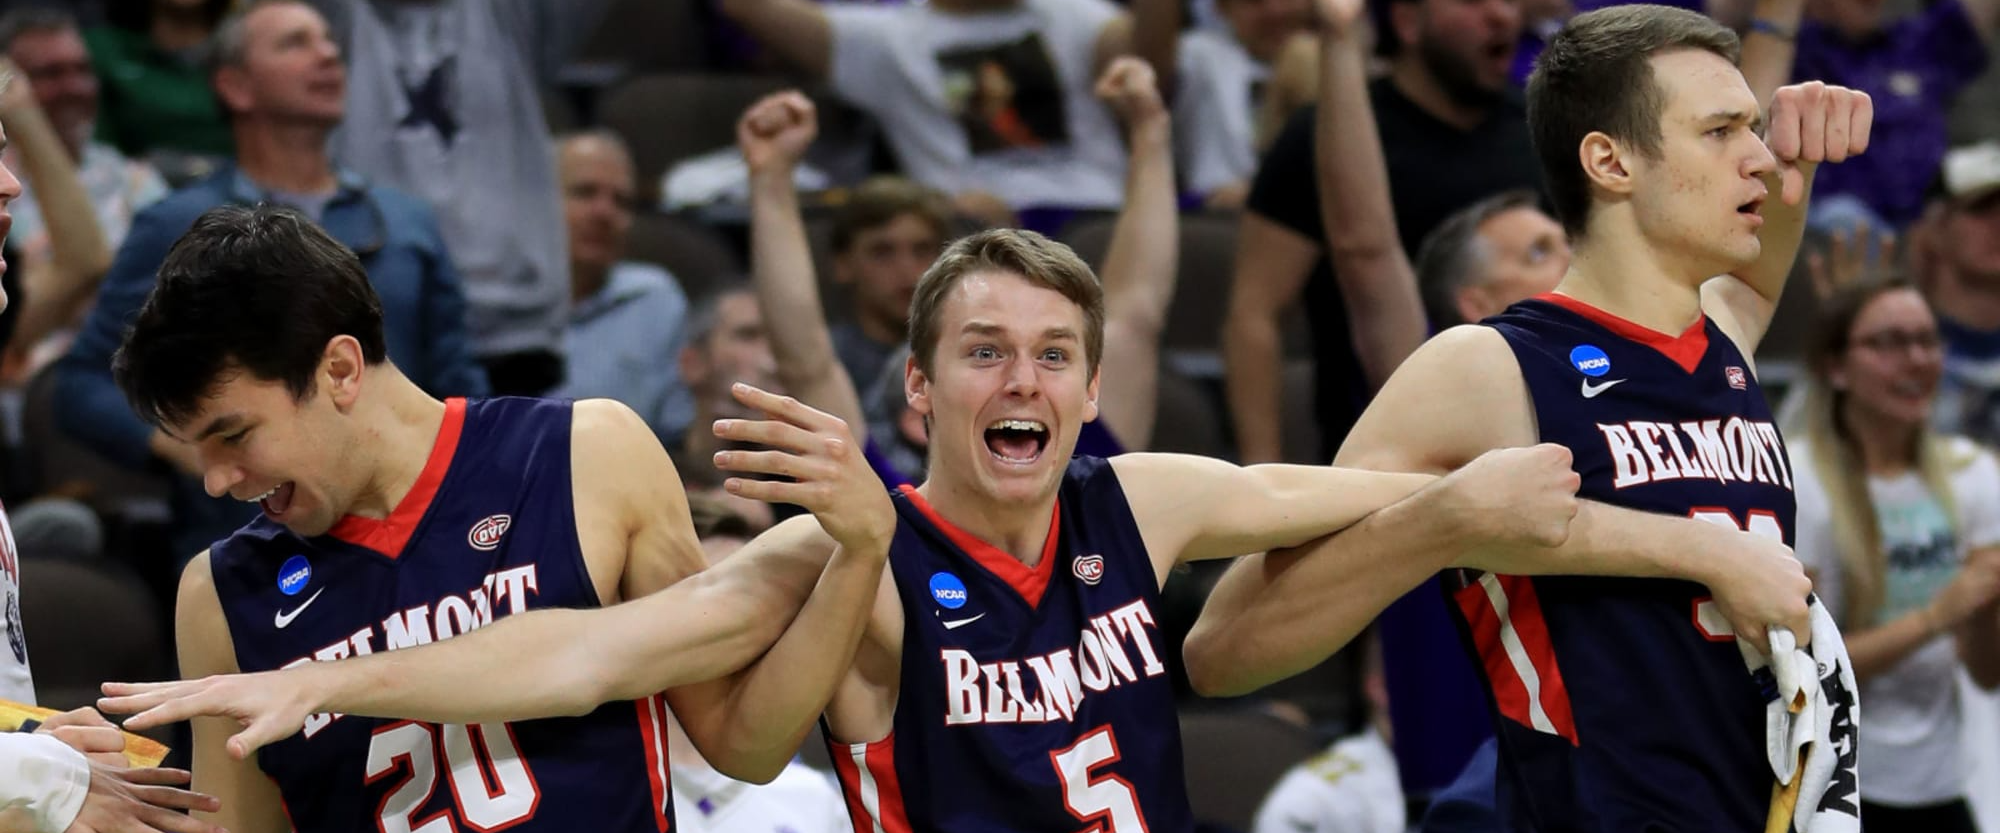 Belmont moving to the Missouri Valley Conference in 2022